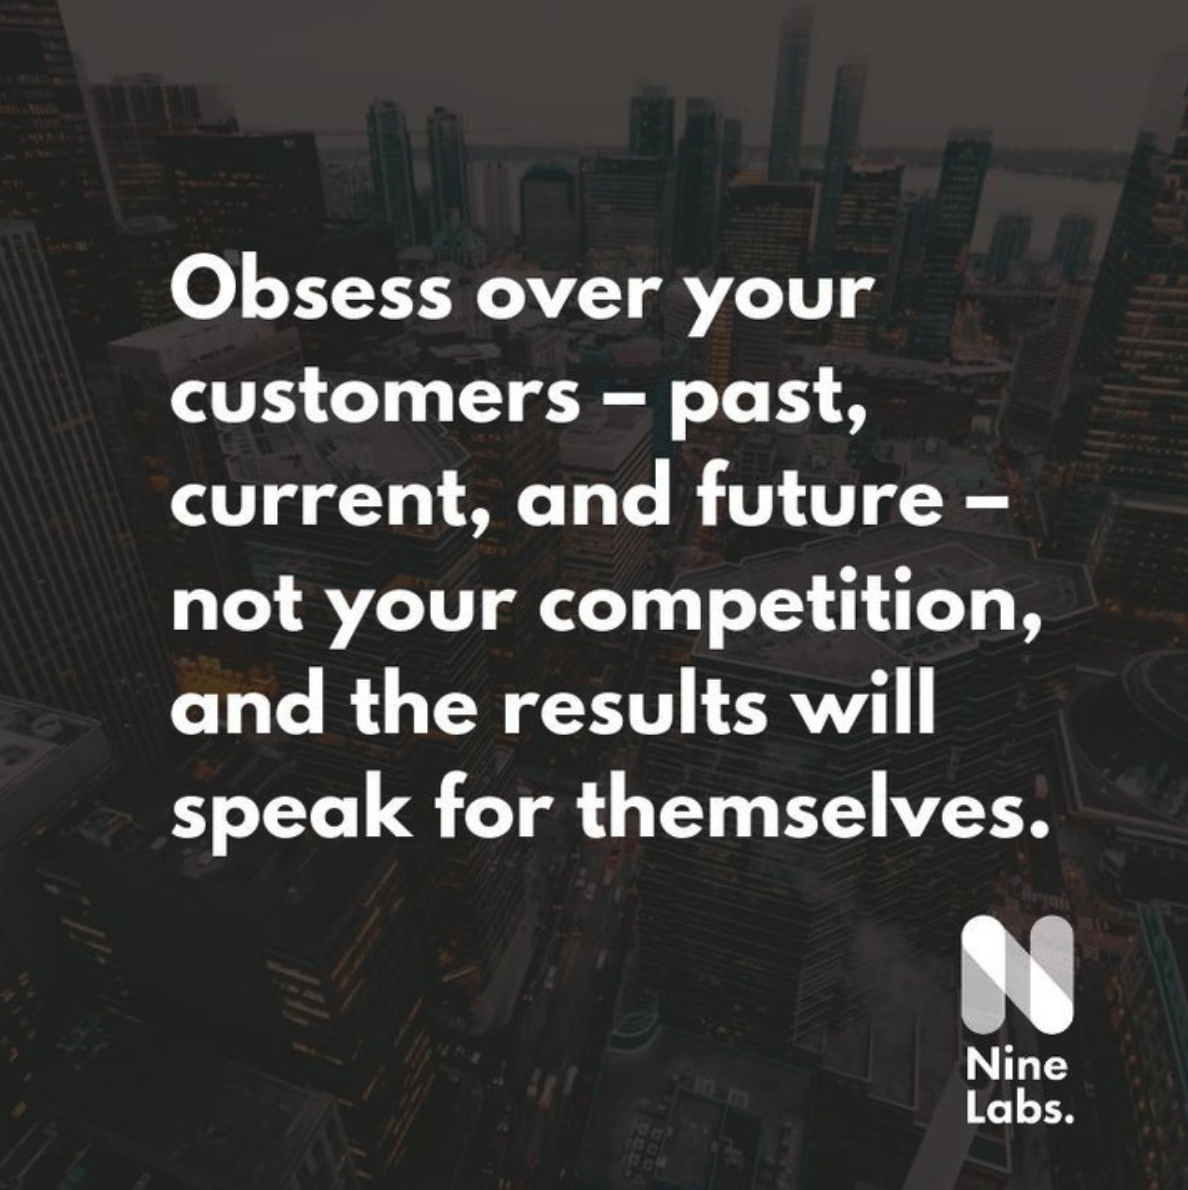 Obsess over your customers. #uxdesign